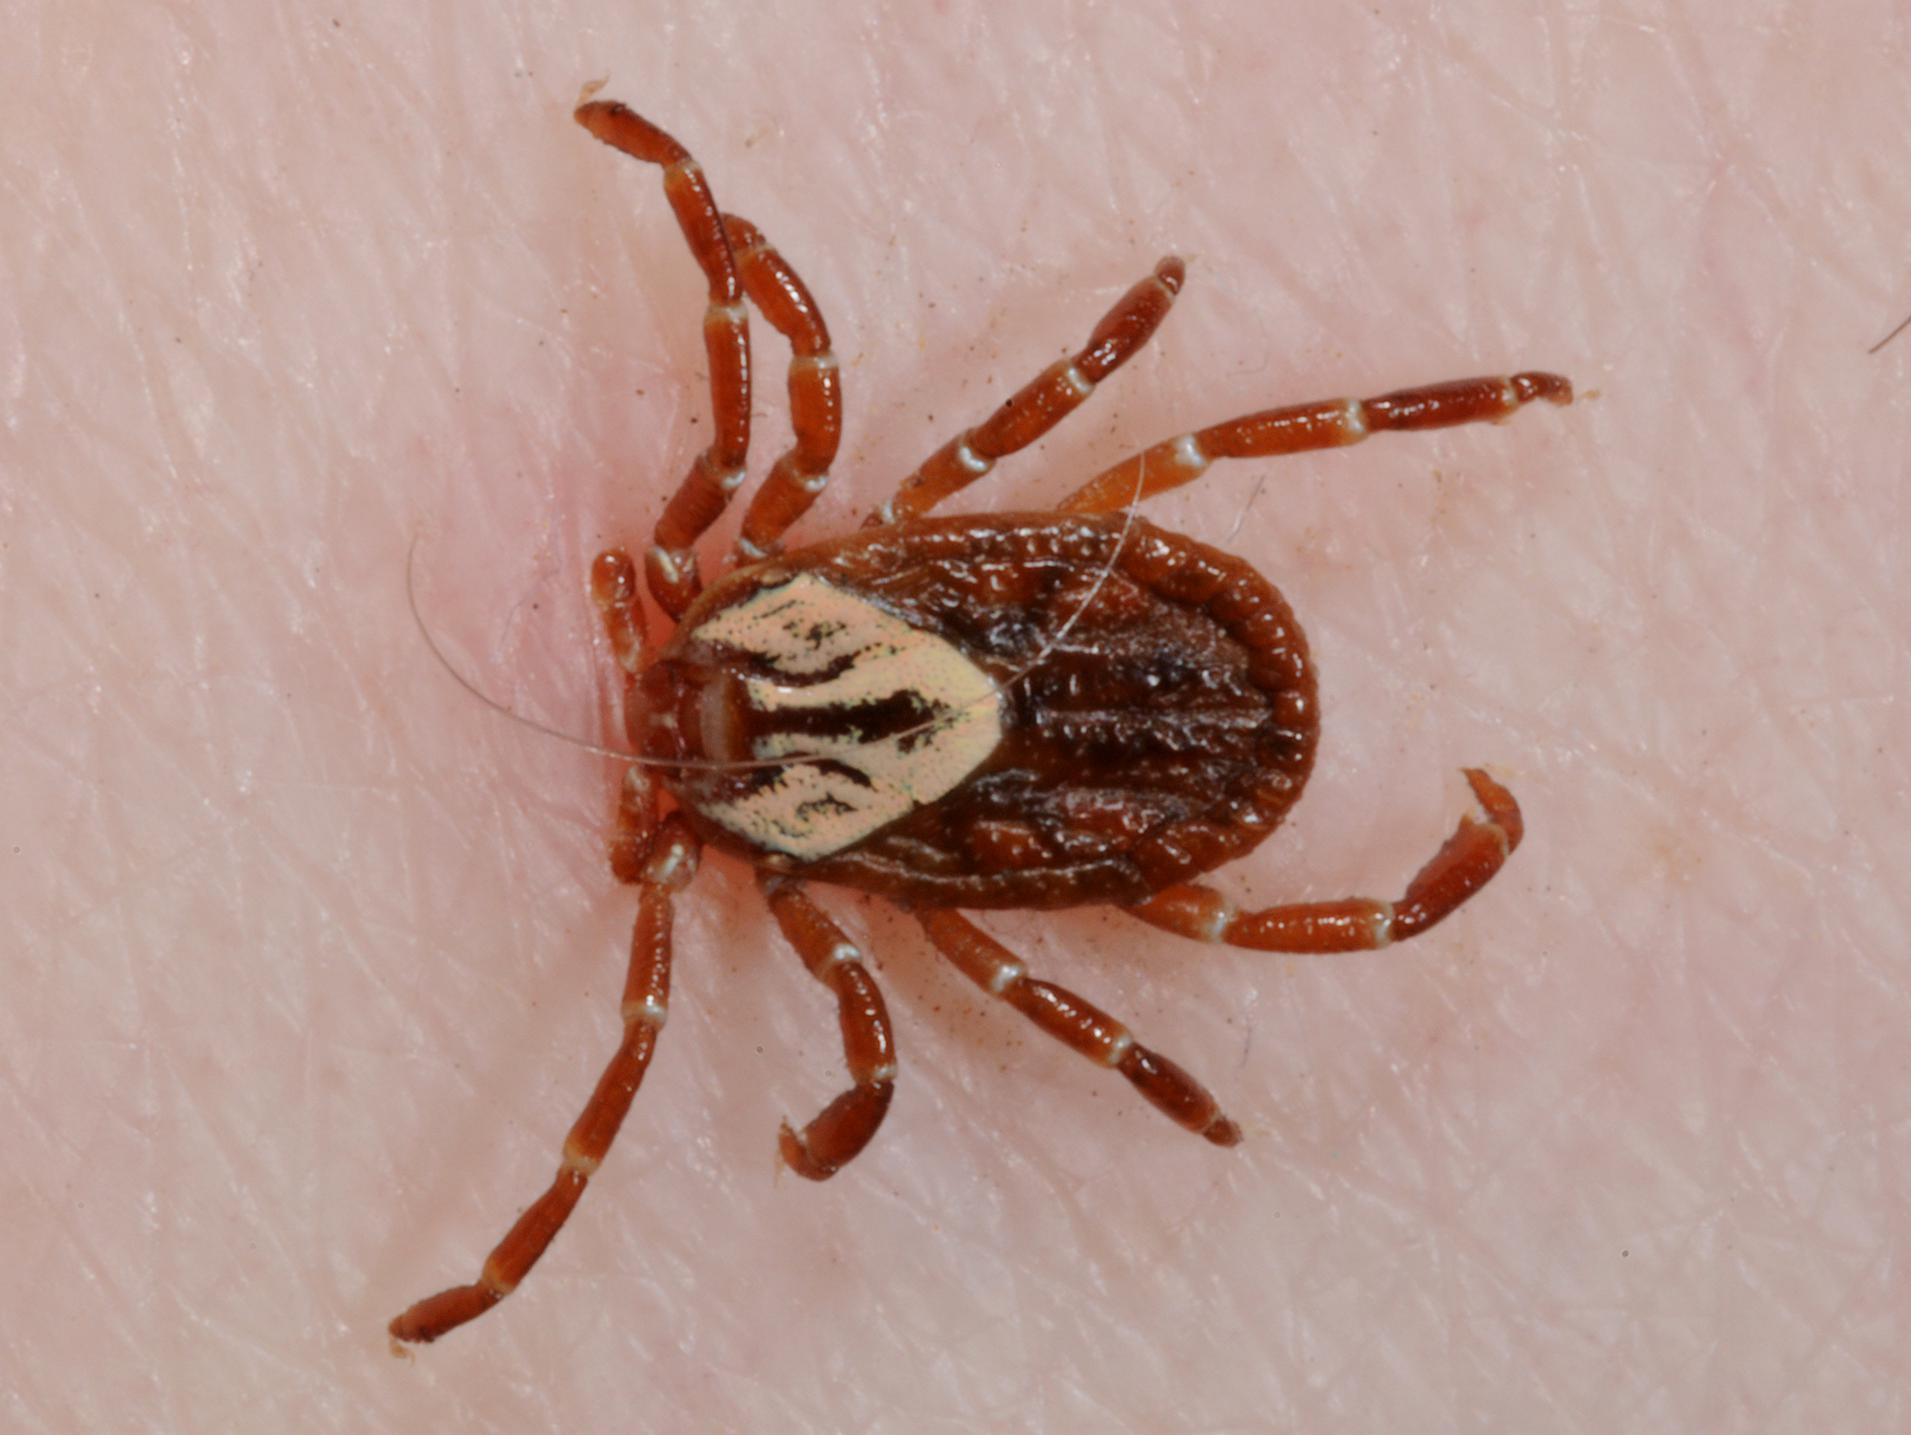 Close-up of a tick attached to human skin.